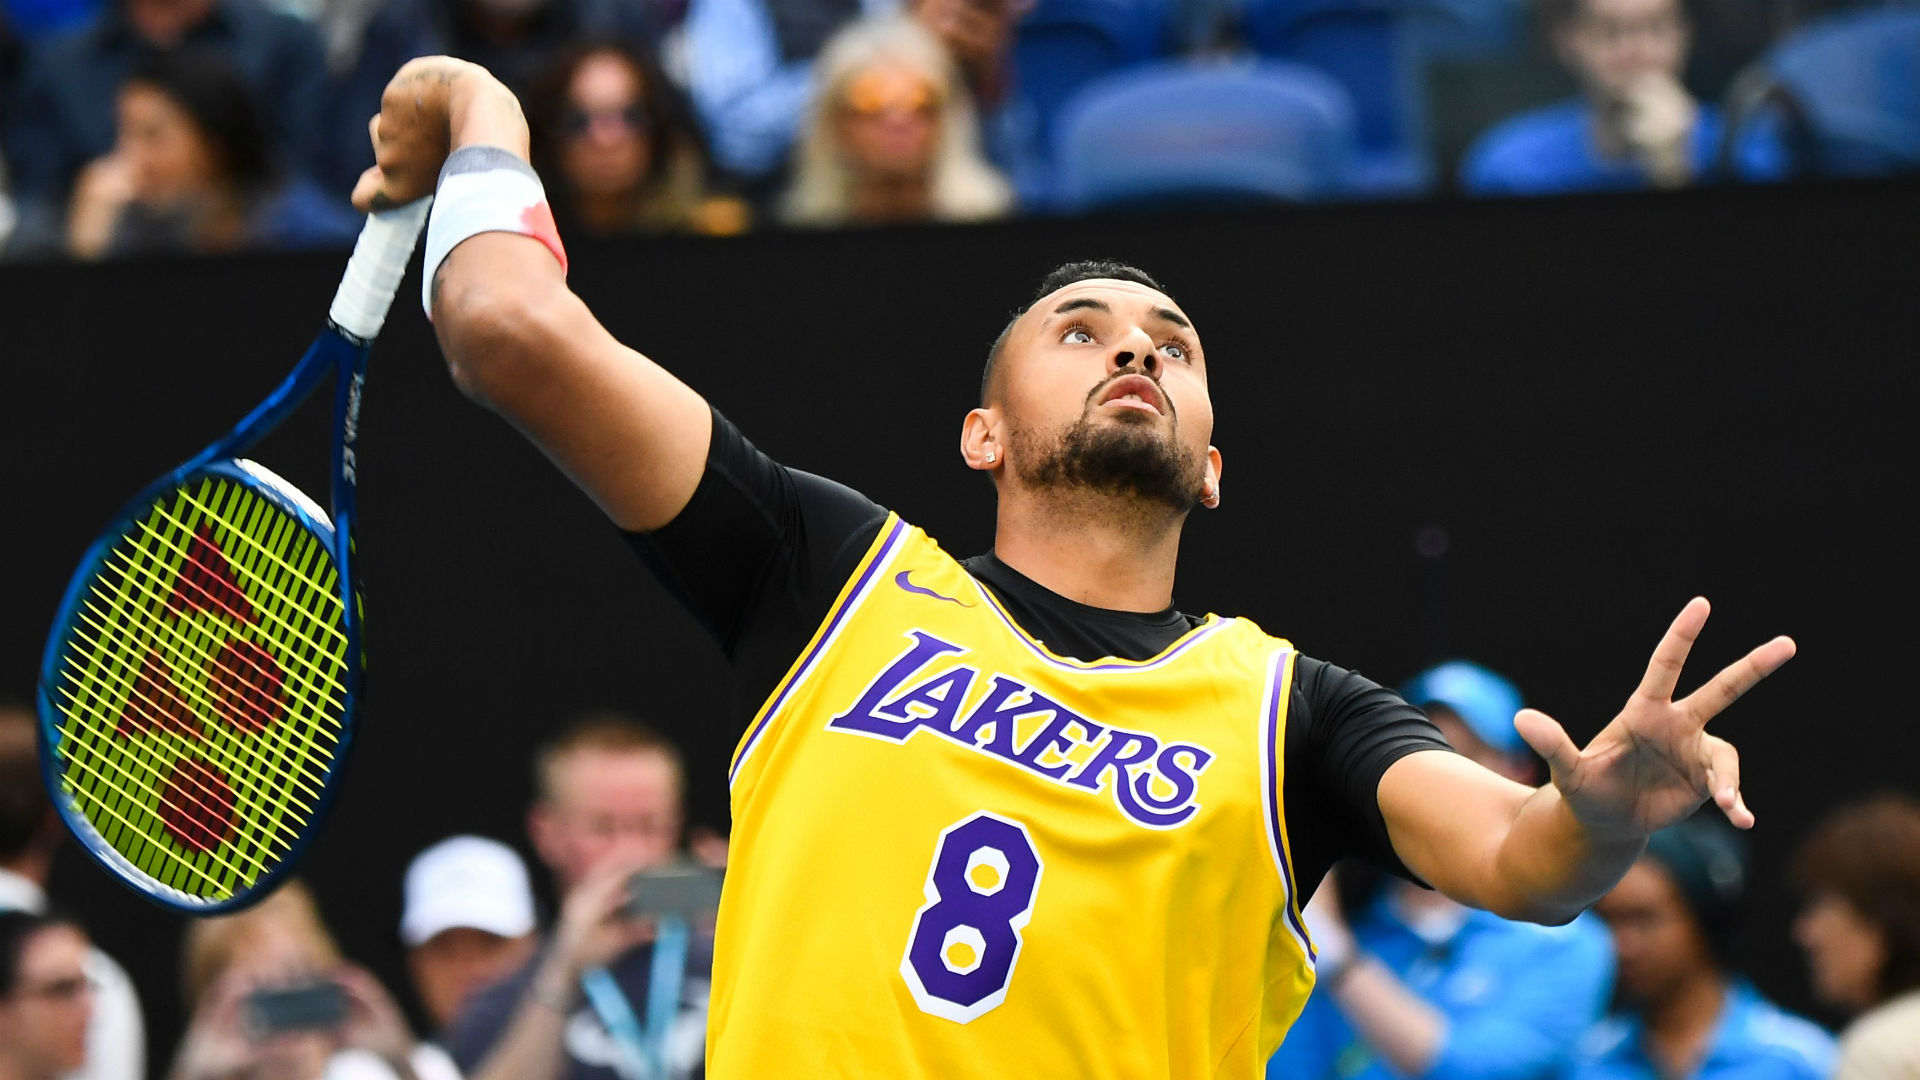 Kyrgios pays tribute to Kobe Bryant & LeBron James with new tattoo